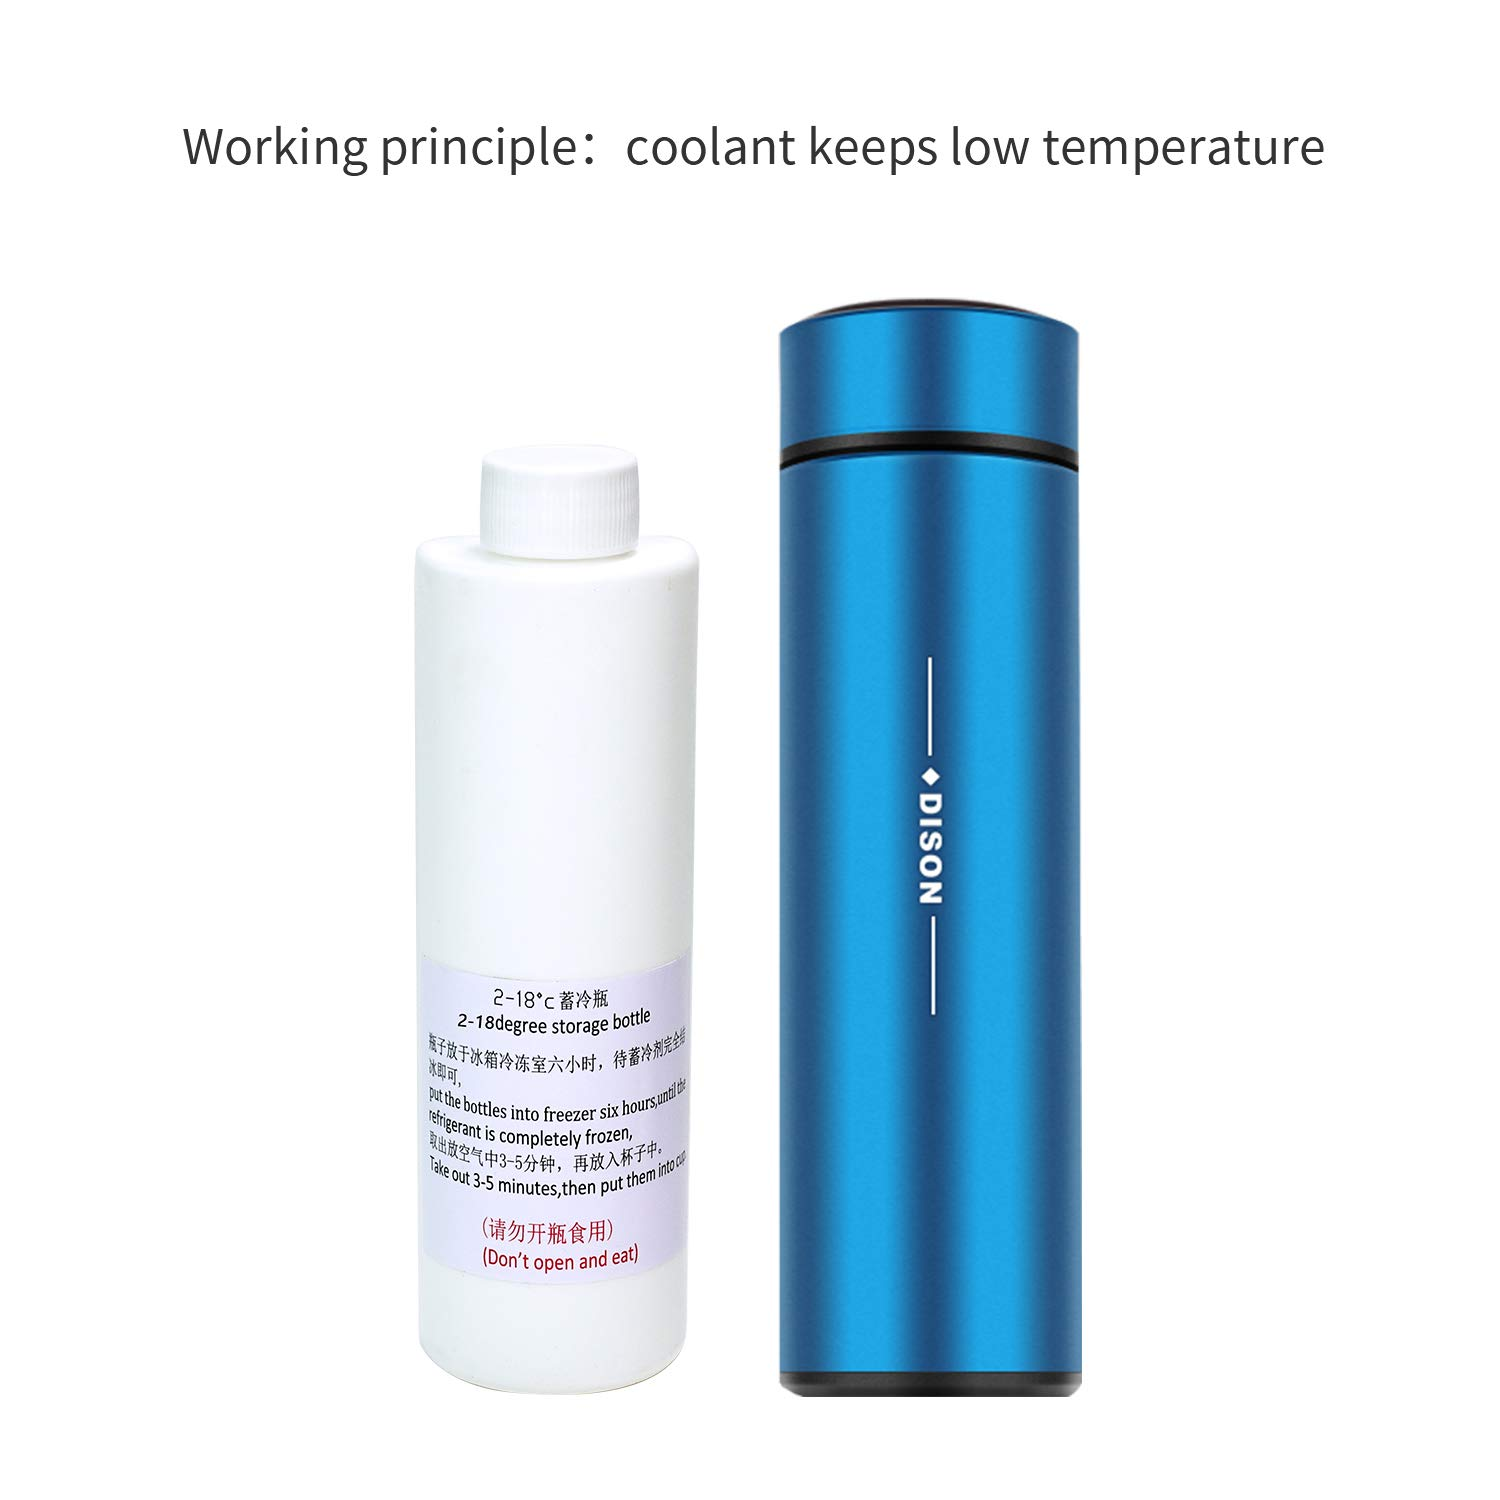 Dison Portable Insulin Cooler Mini Cold Refrigerato 24 Hours at 2-8 Chilled Cup Cooler Box Drug Constant Temperature Refrigerated Blue by dison (Image #5)